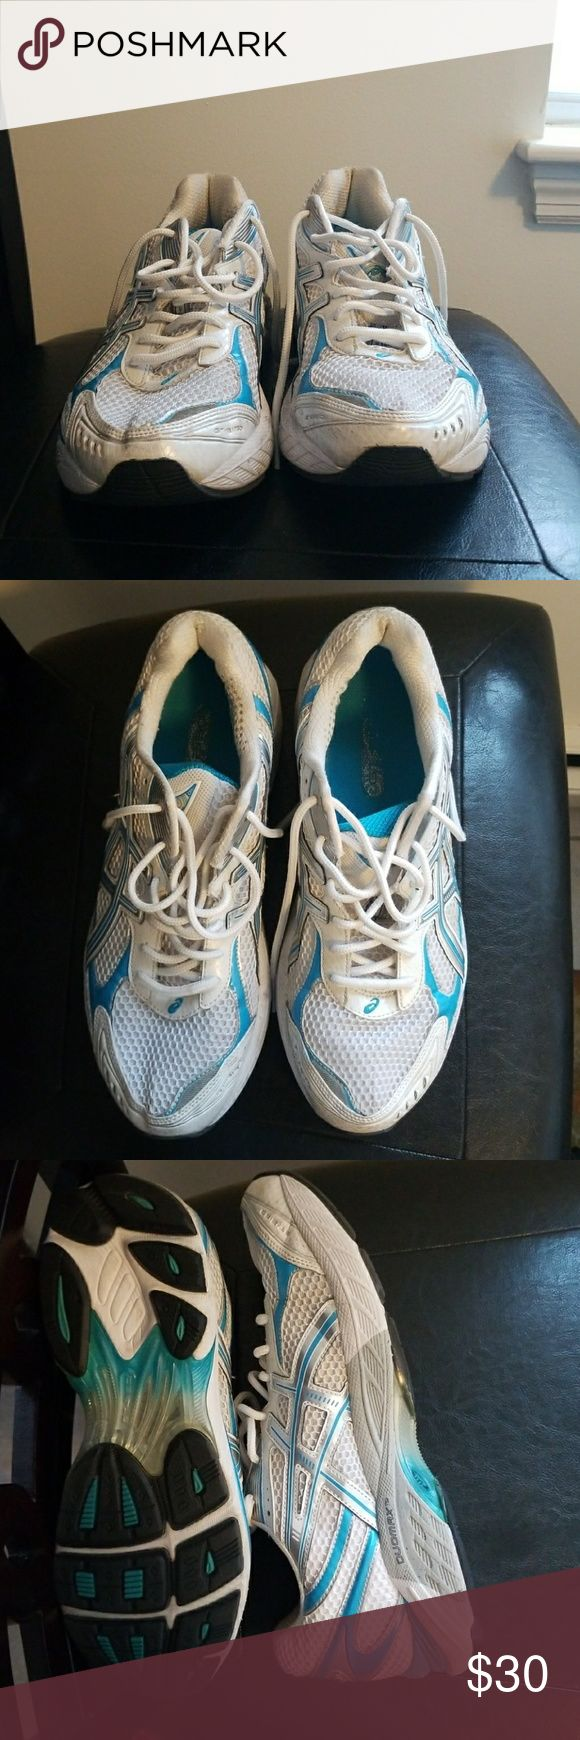 Oasics athletic shoes Moderate condition Oasis Shoes Athletic Shoes